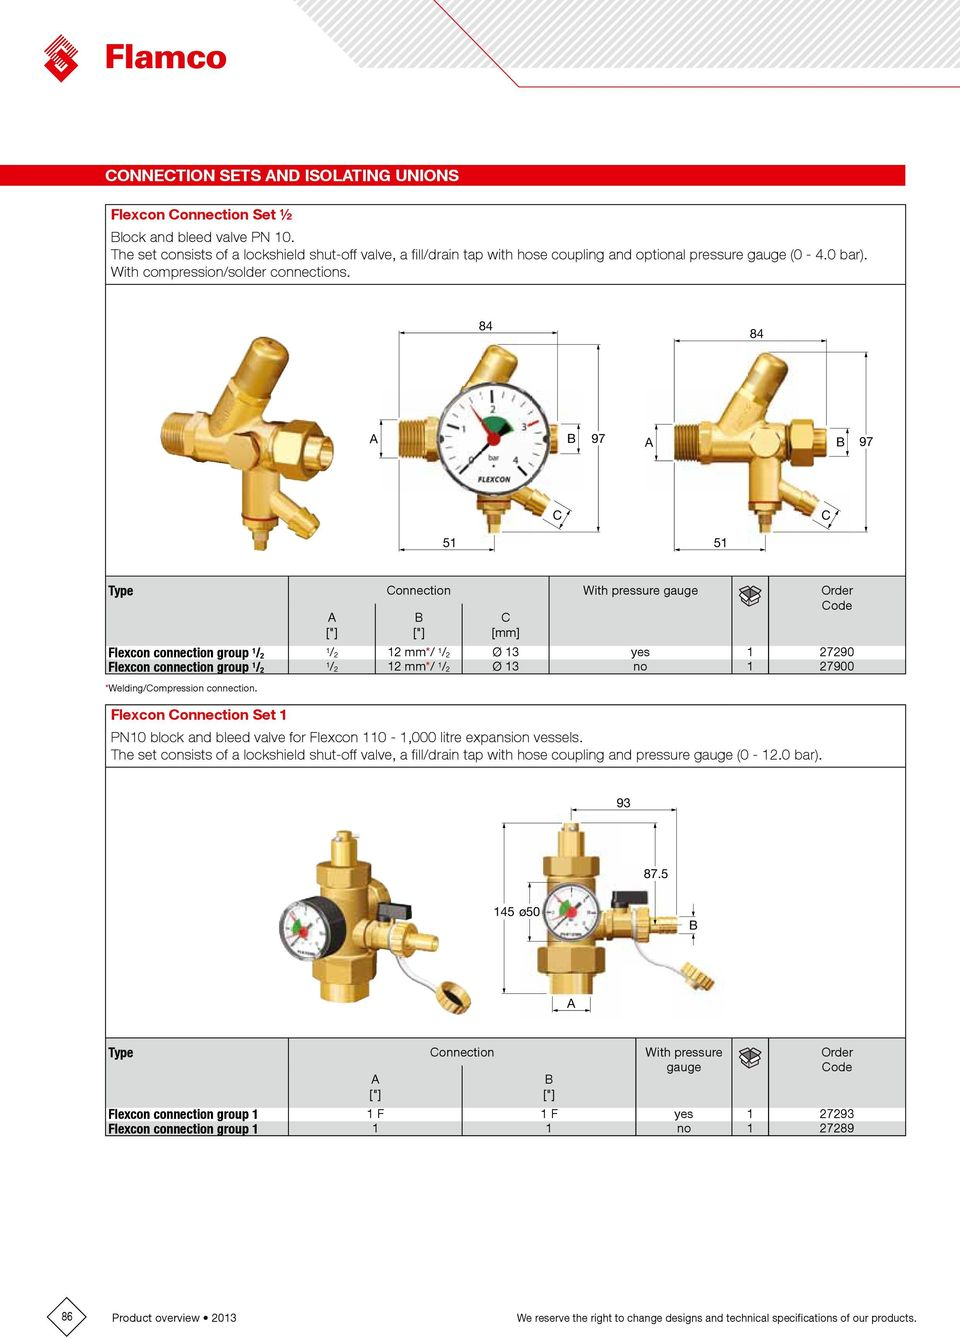 Accessories For Heating And Cooling Installations Pdf Thermostat Wiring Diagram Taco Val 84 97 51 Onnection With Pressure Gauge Flexcon Connection Group 1 2